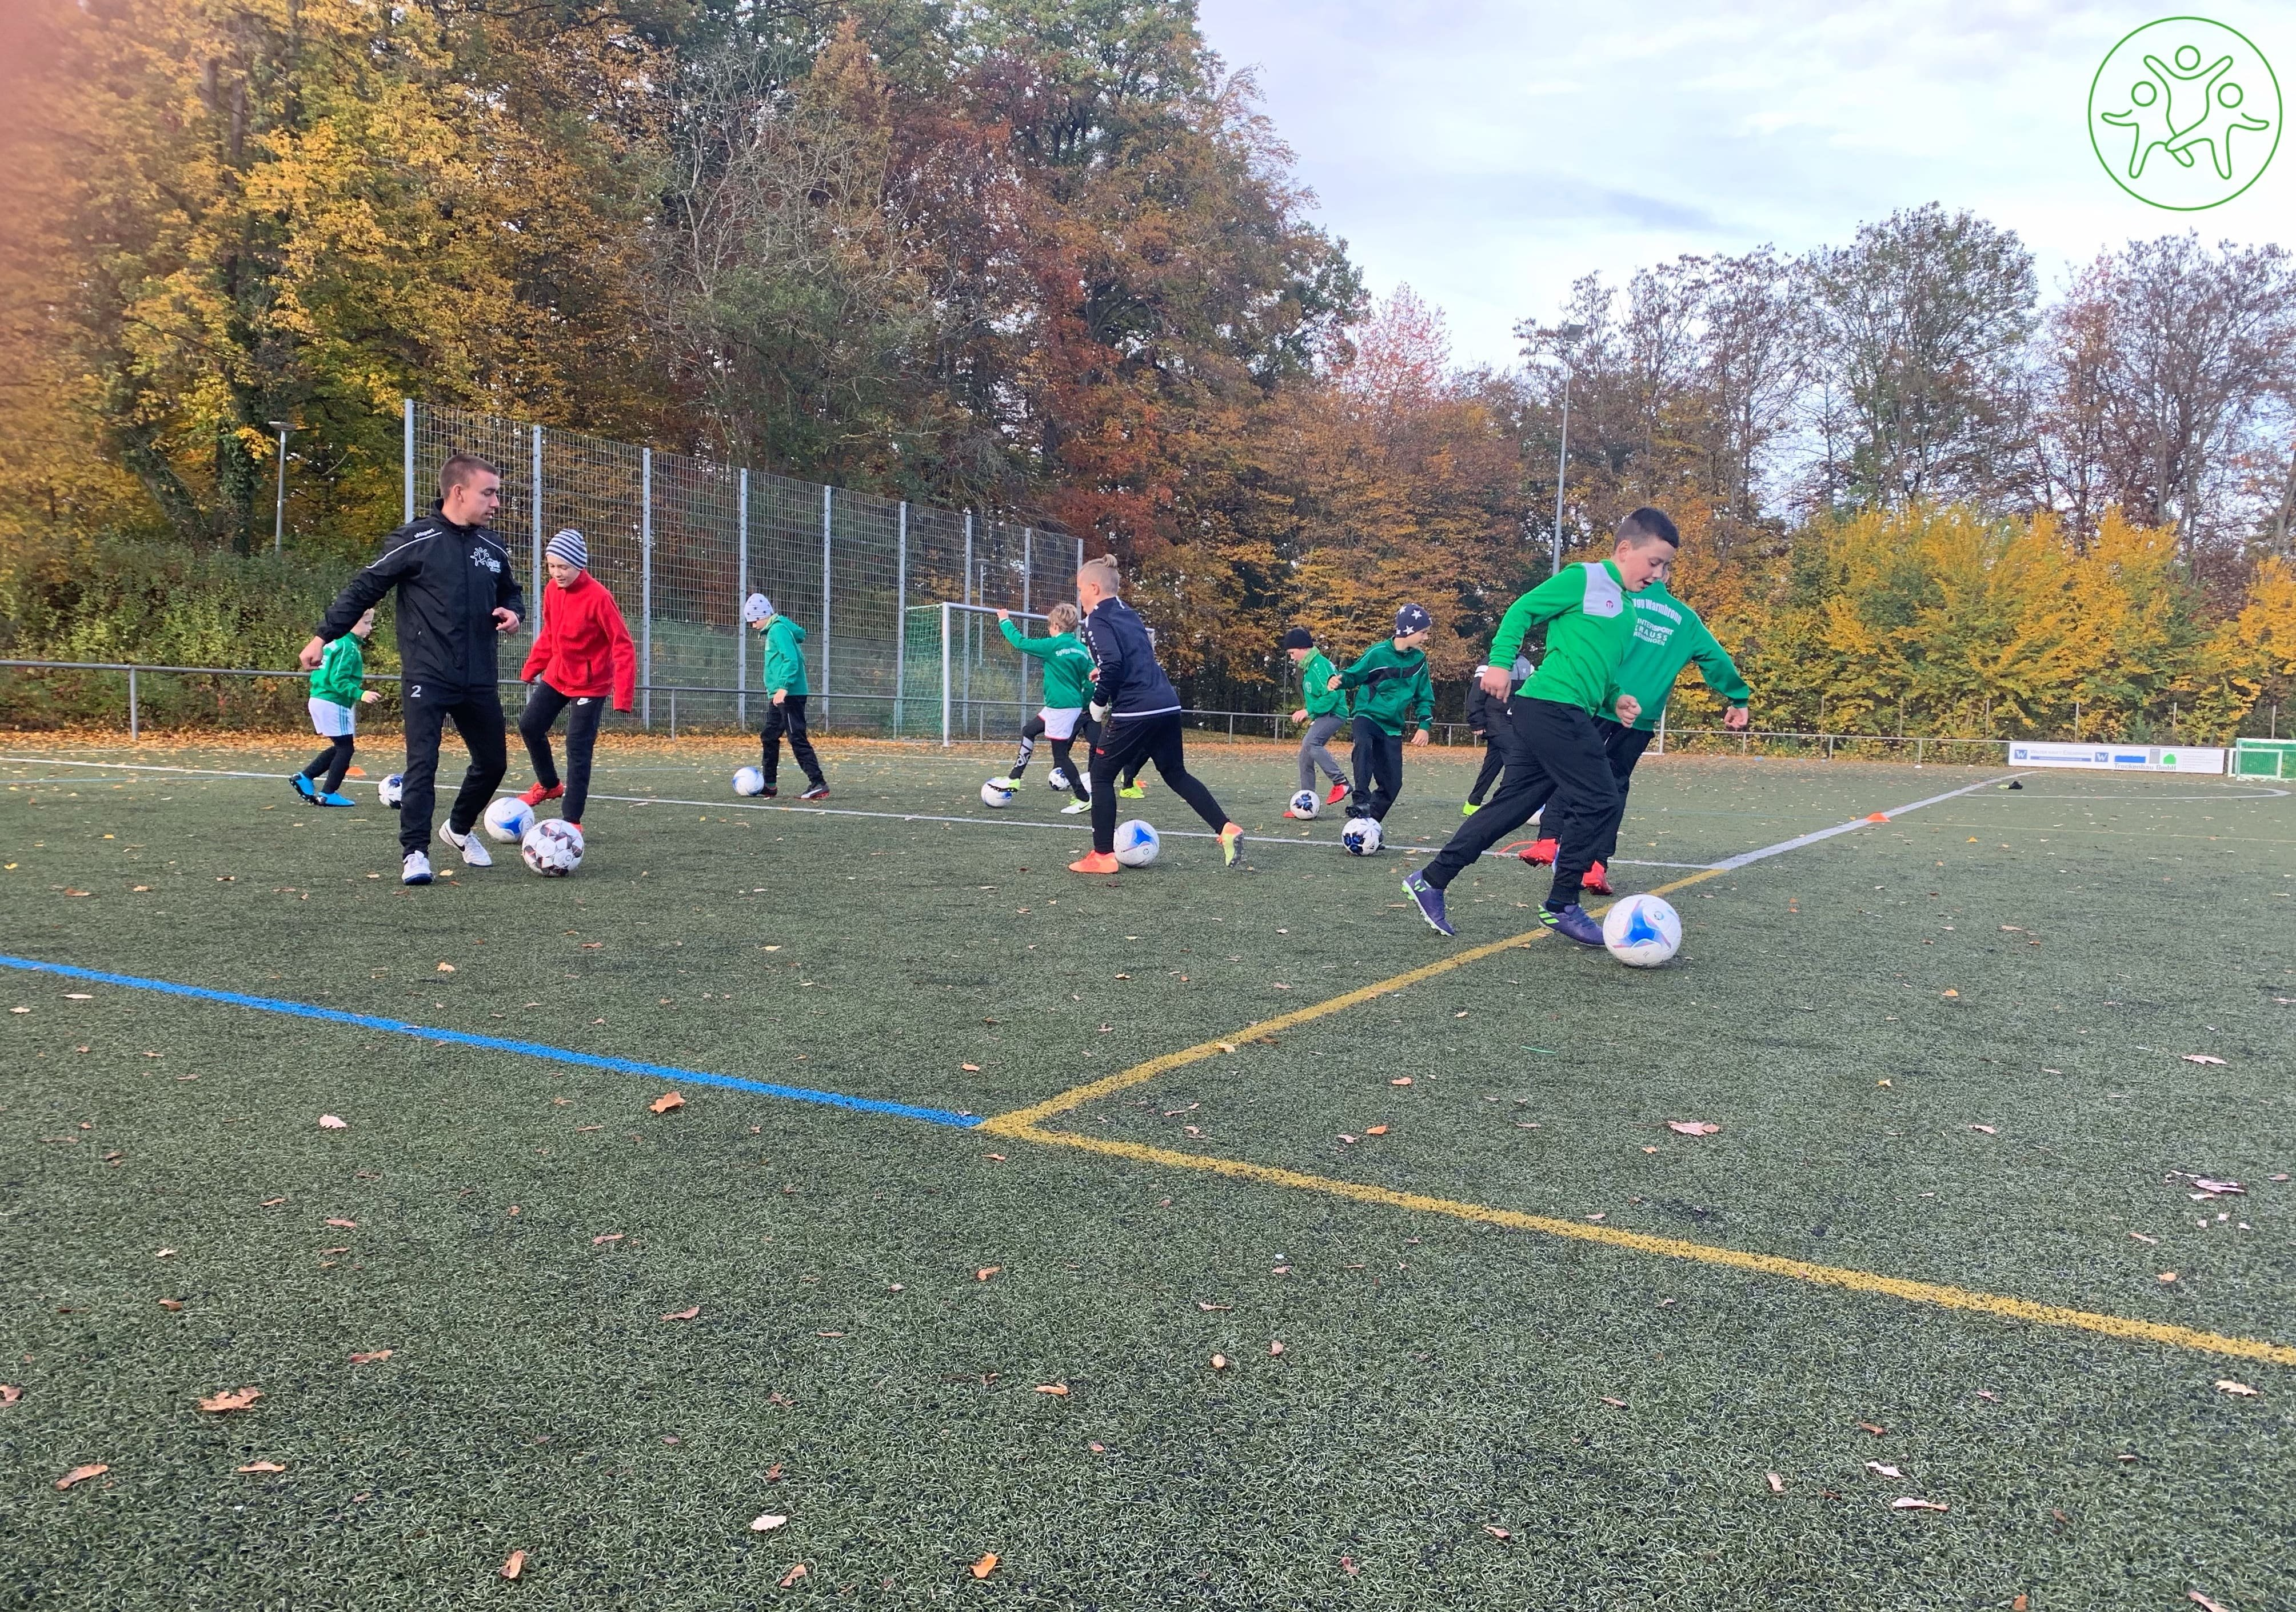 Home-of-Goals-Camp-Werte-durch-Sport-Kinder